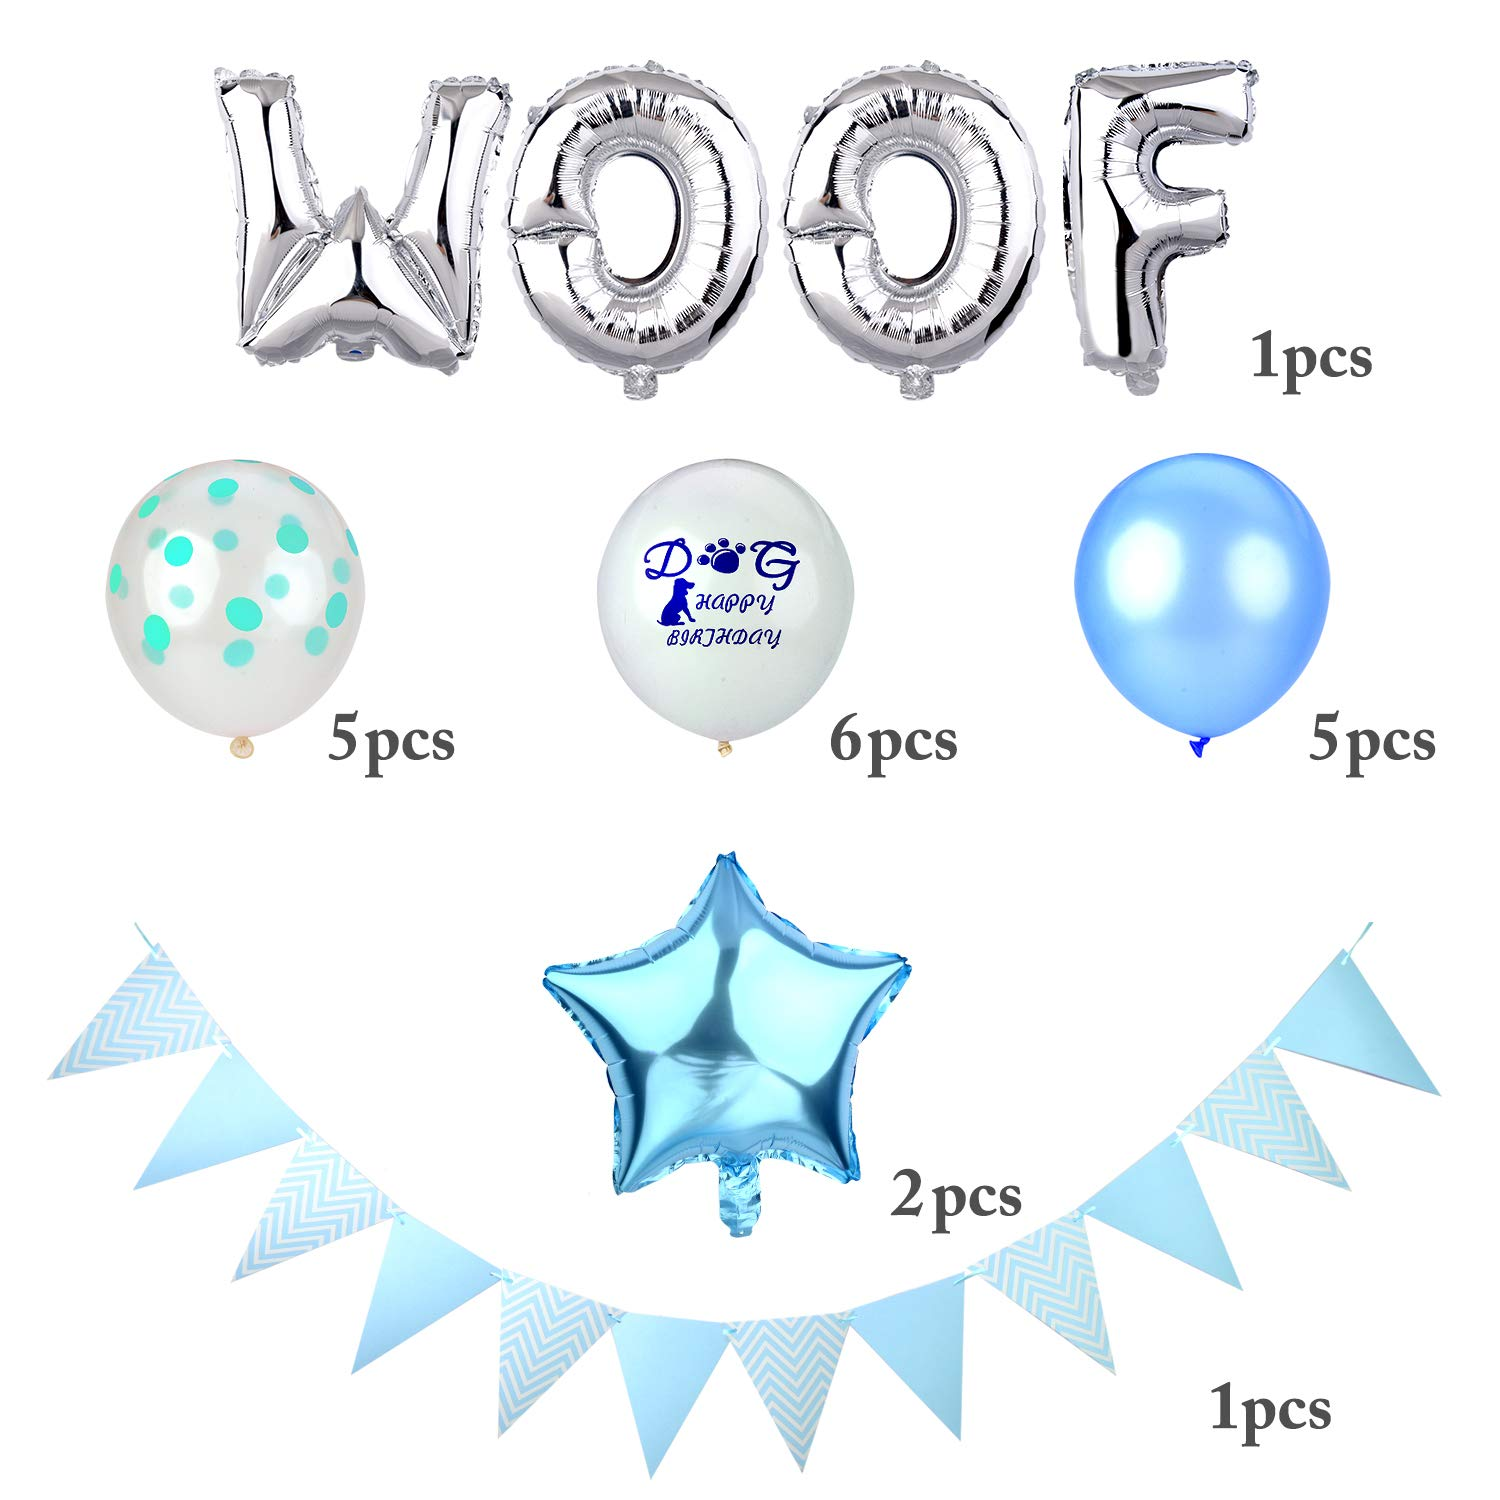 Legendog 24Pcs Dog Cat Birthday Party Supplies, Dog Boy Birthday Party Decorations, Dog Cat Birthday Party WOOF Letters Balloons, Happy Pet Birthday Party Kit (Blue)